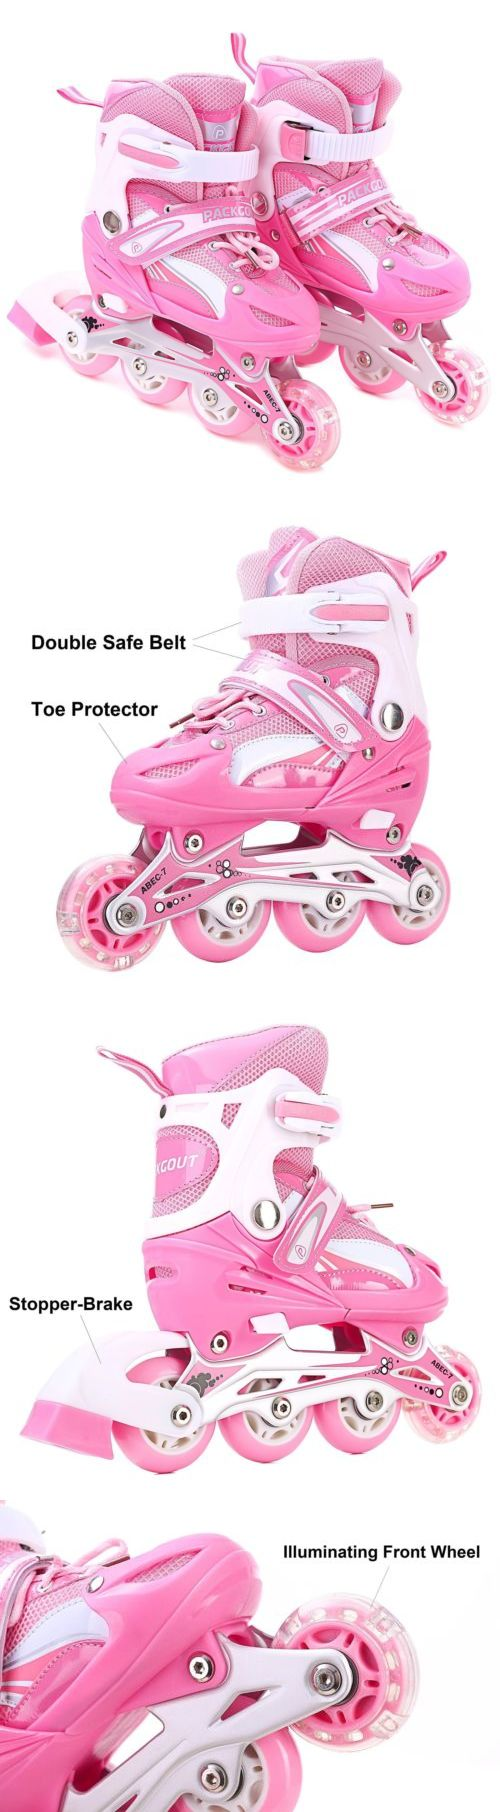 Youth 47345: Girls Inline Skates Adjustable Rollerblades For Kids Girls With Illuminating ... -> BUY IT NOW ONLY: $44.94 on eBay!